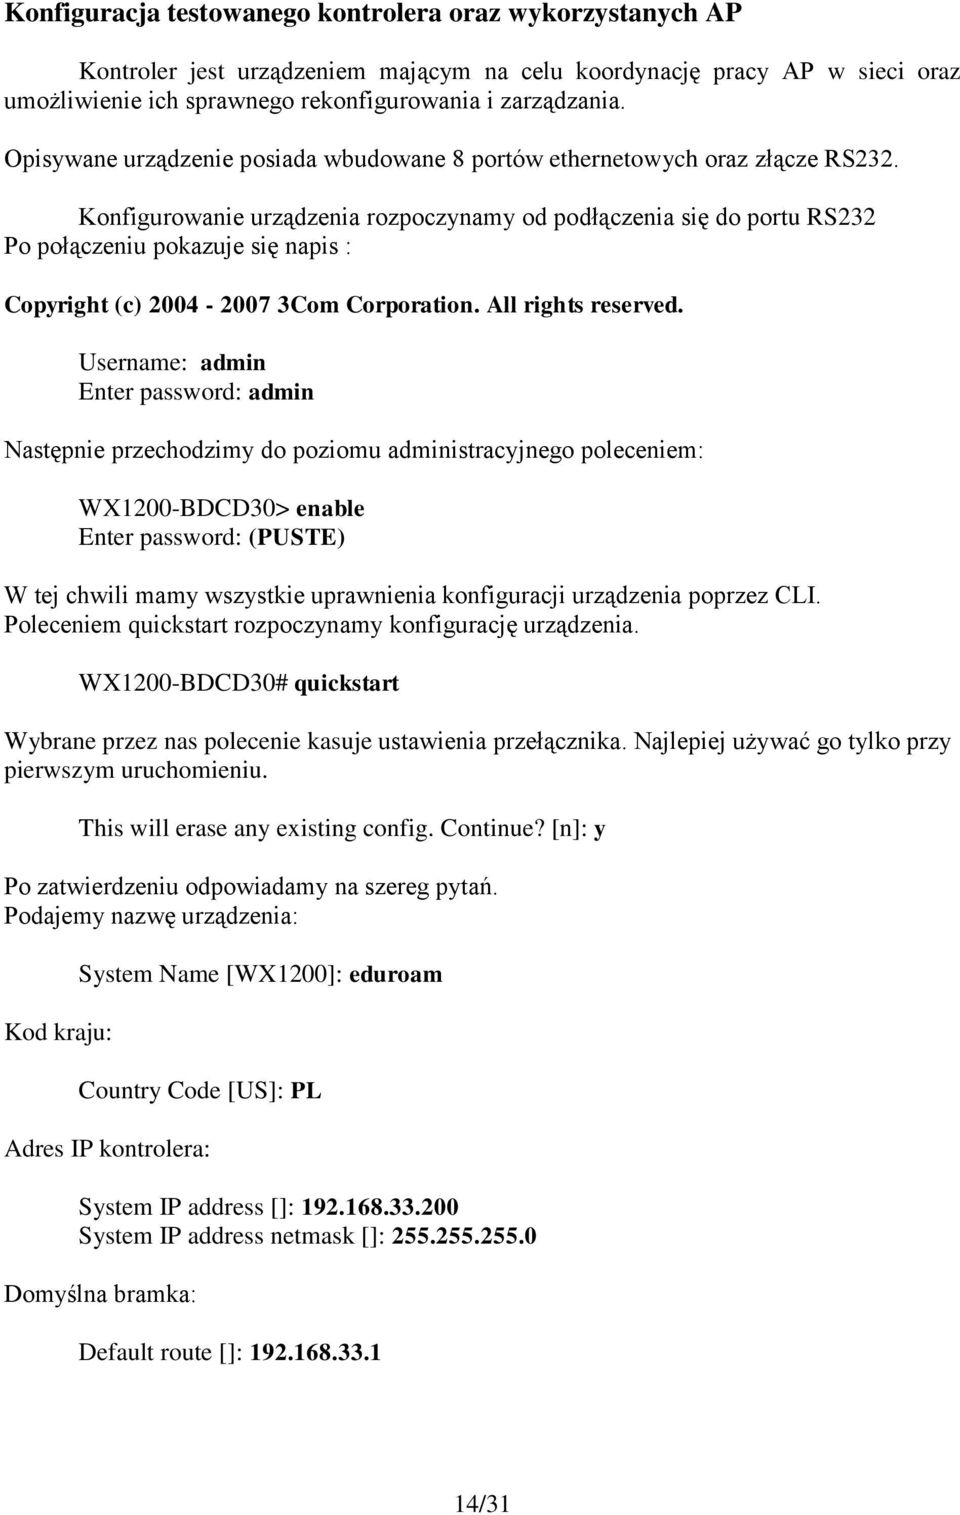 Konfigurowanie urządzenia rozpoczynamy od podłączenia się do portu RS232 Po połączeniu pokazuje się napis : Copyright (c) 2004-2007 3Com Corporation. All rights reserved.